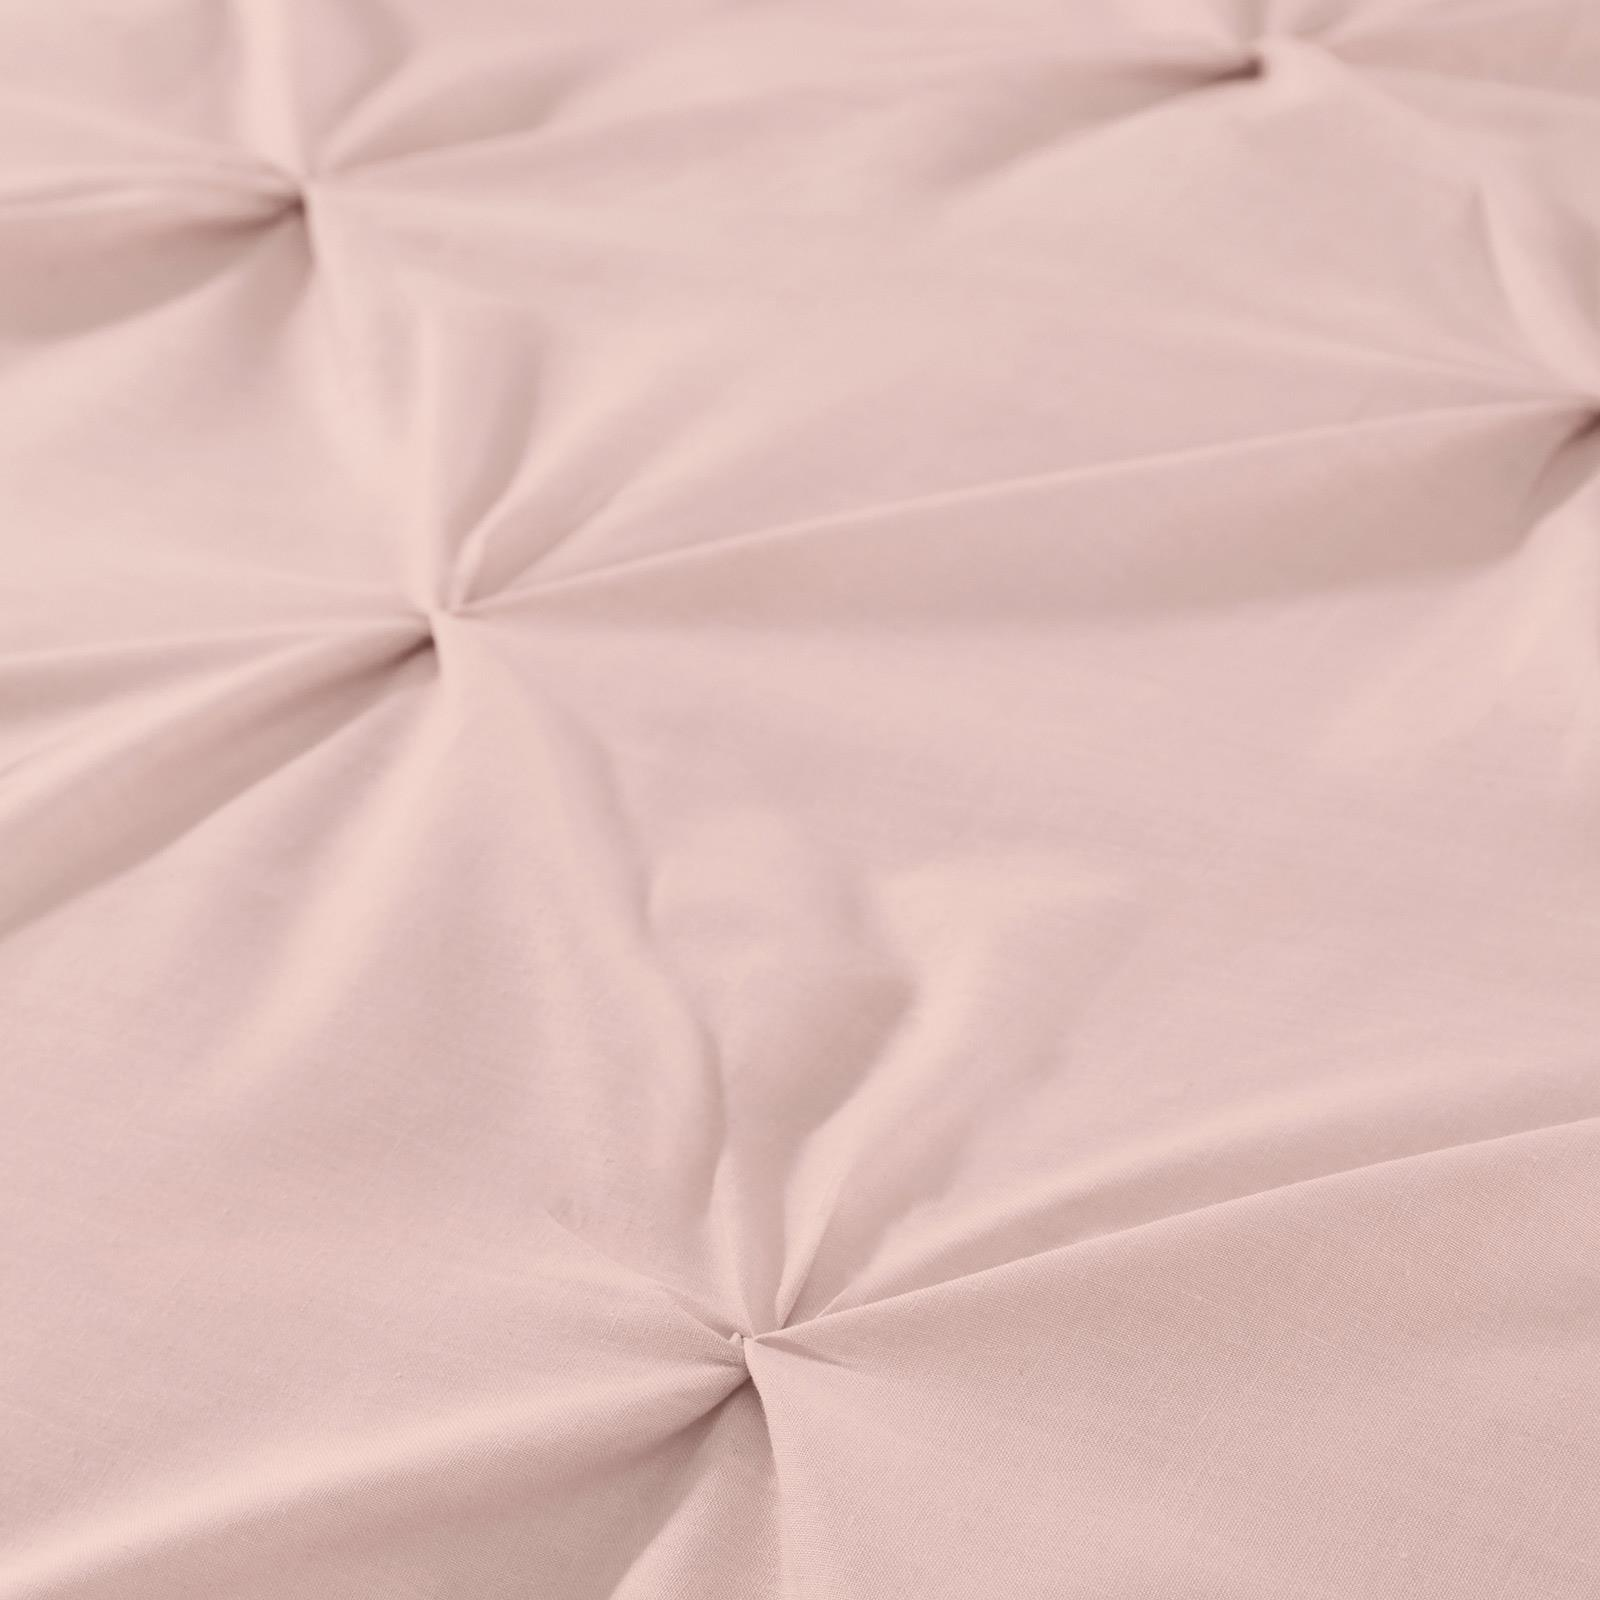 Blush-Duvet-Covers-Ruched-Pin-Tuck-Stitched-Plain-Pink-Quilt-Cover-Bedding-Sets thumbnail 5